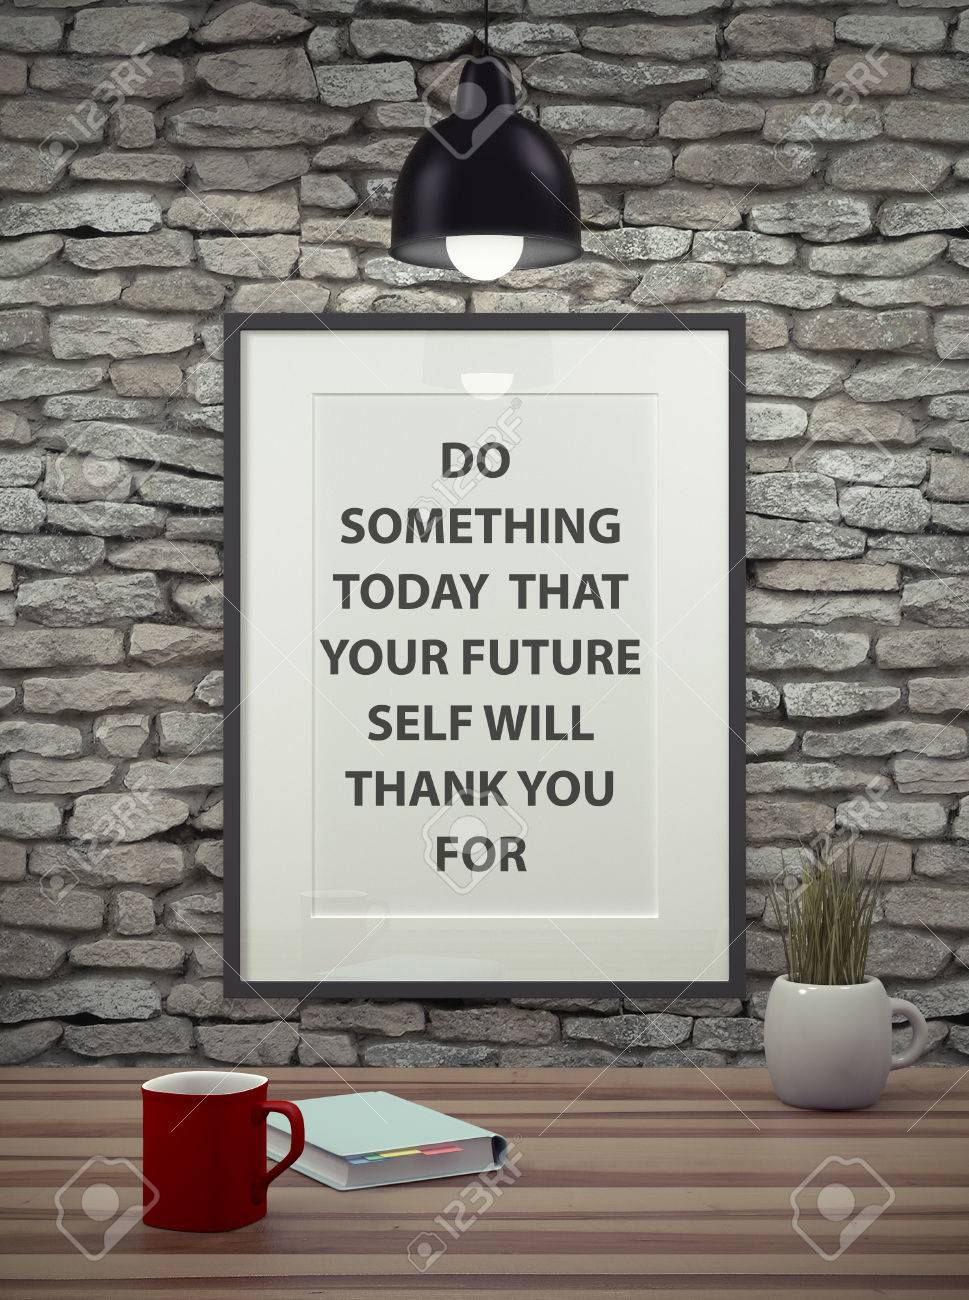 Inspirational Quote On Picture Frame Over A Dirty Brick Wall. DO SOMETHING  TODAY THAT YOUR